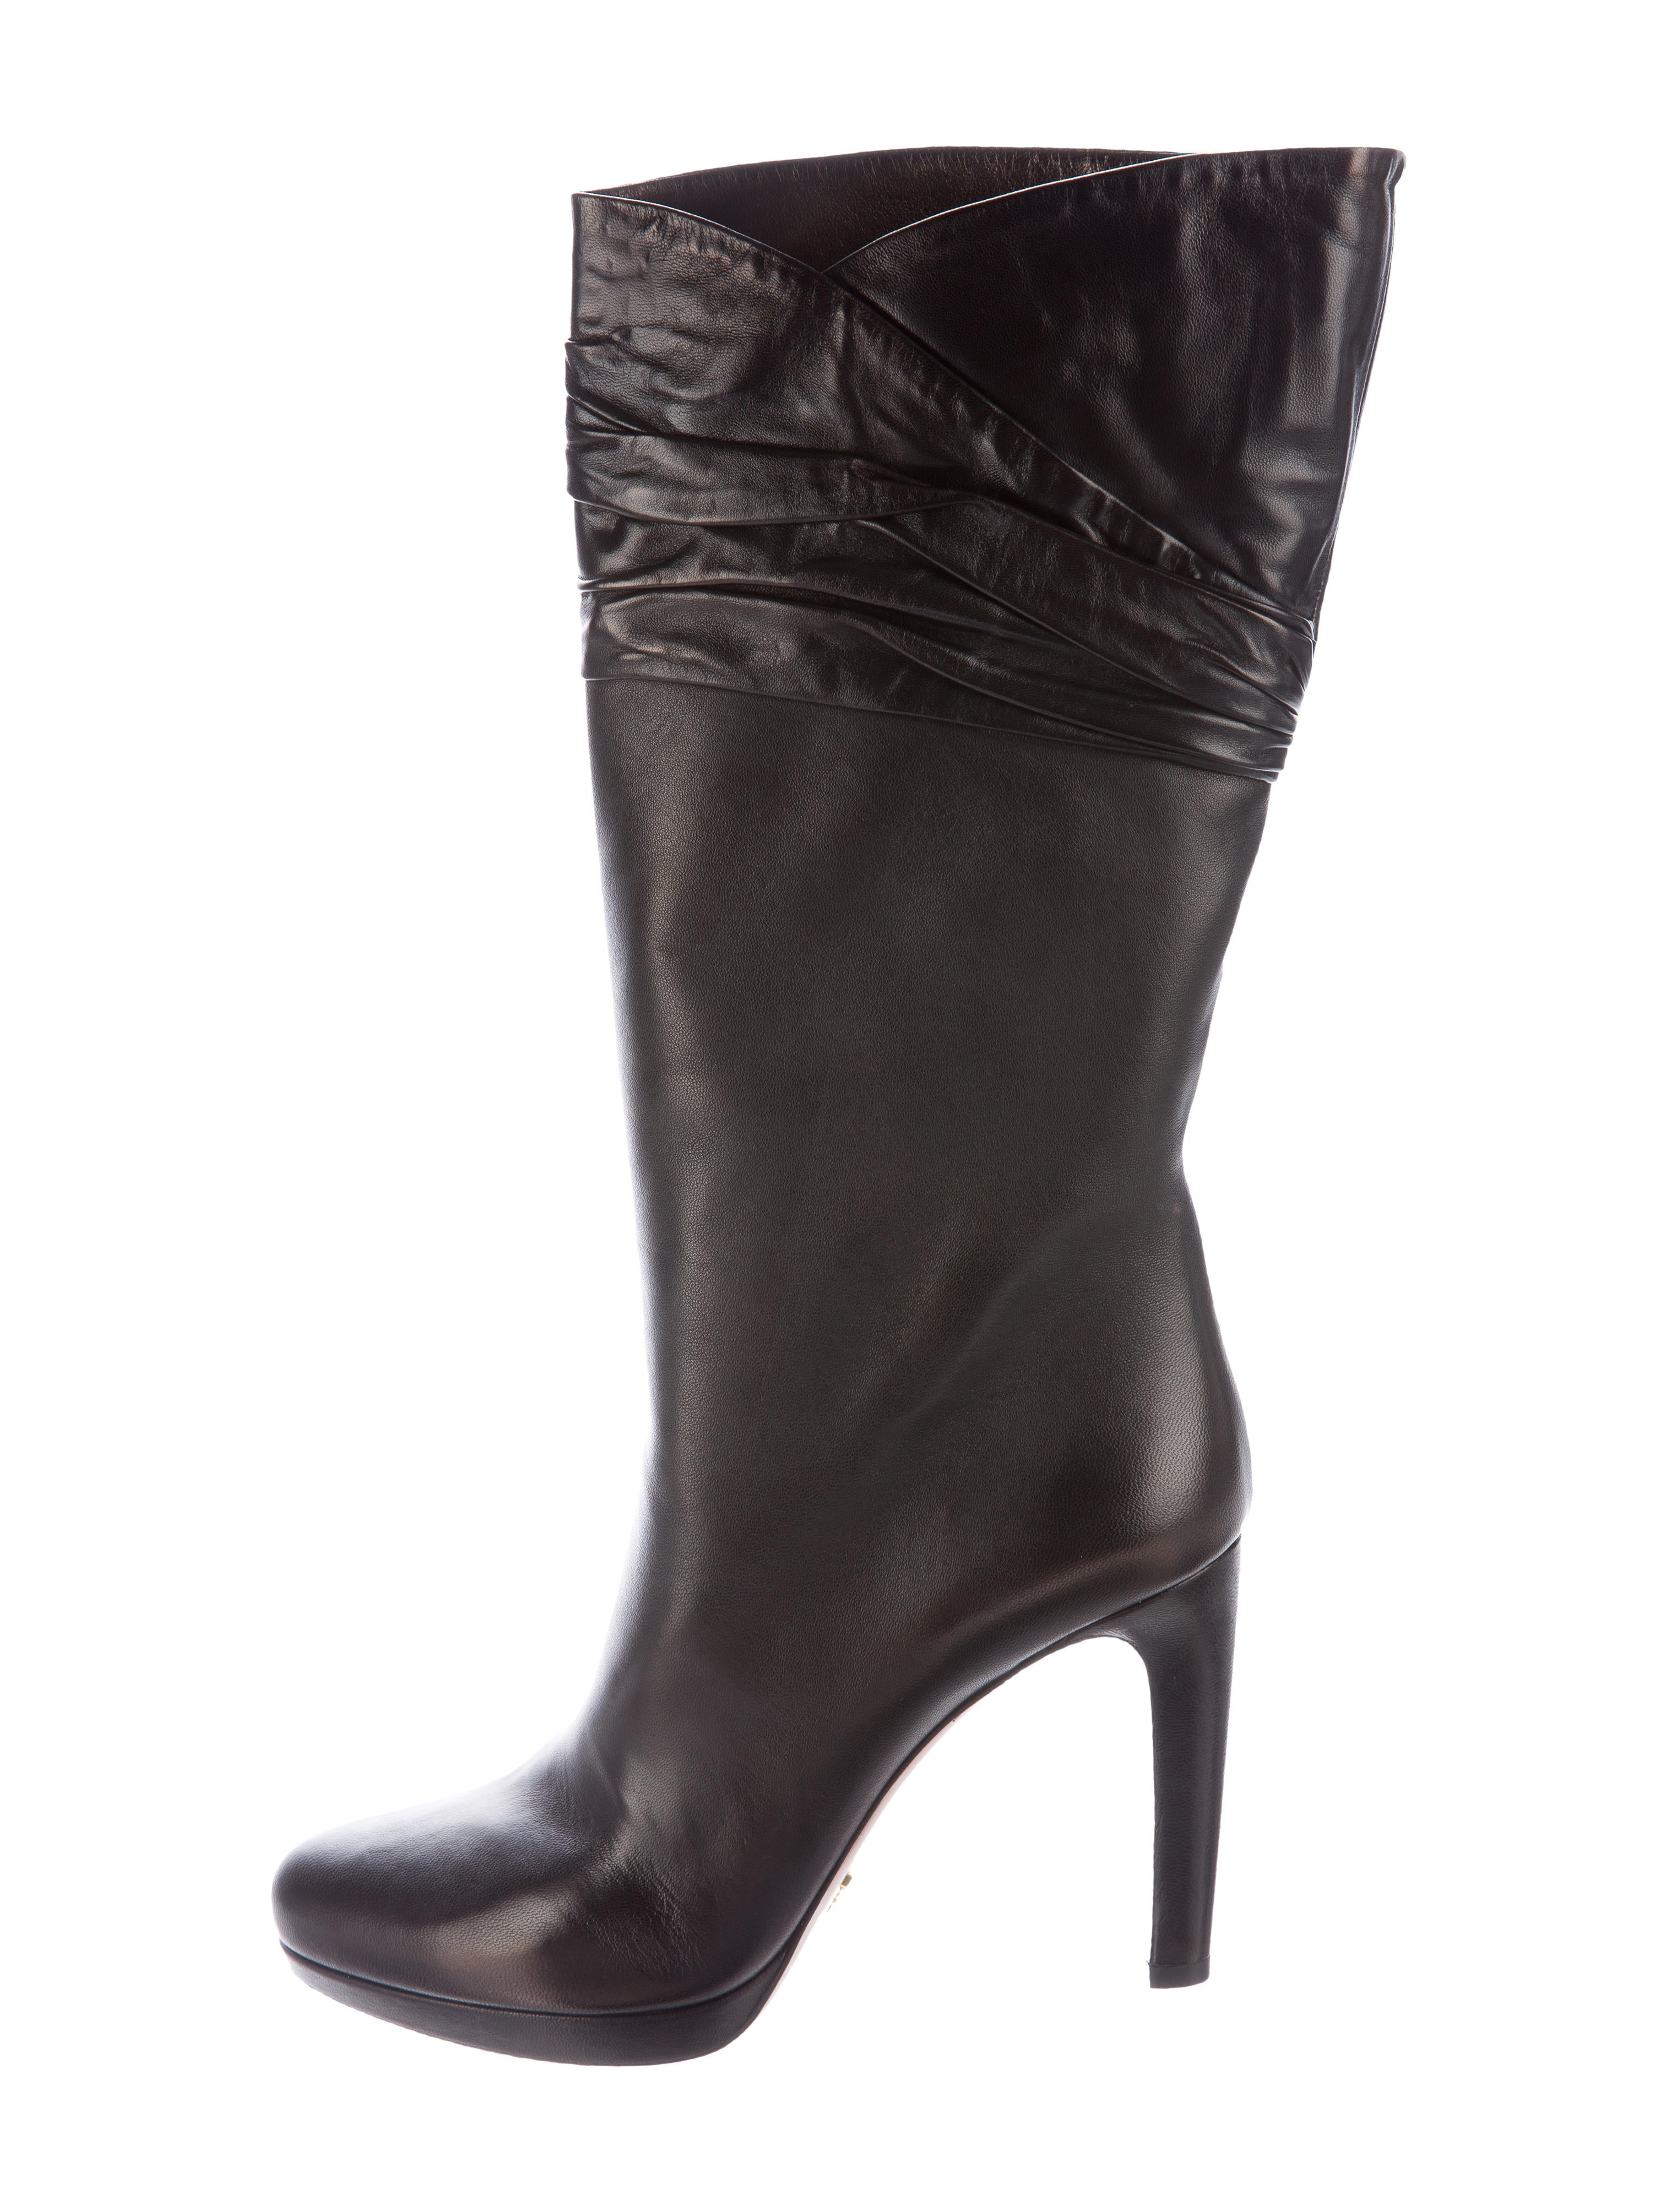 prada leather knee high boots shoes pra117377 the